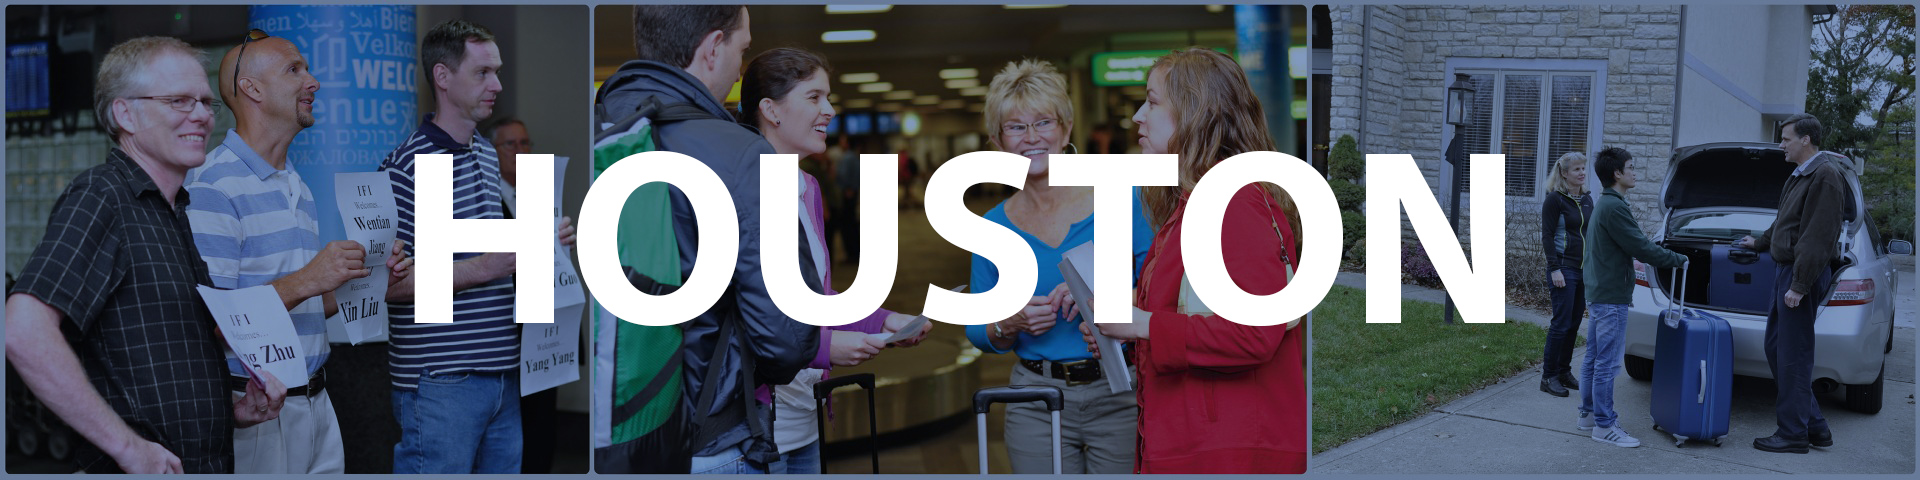 banner-image-2-houston